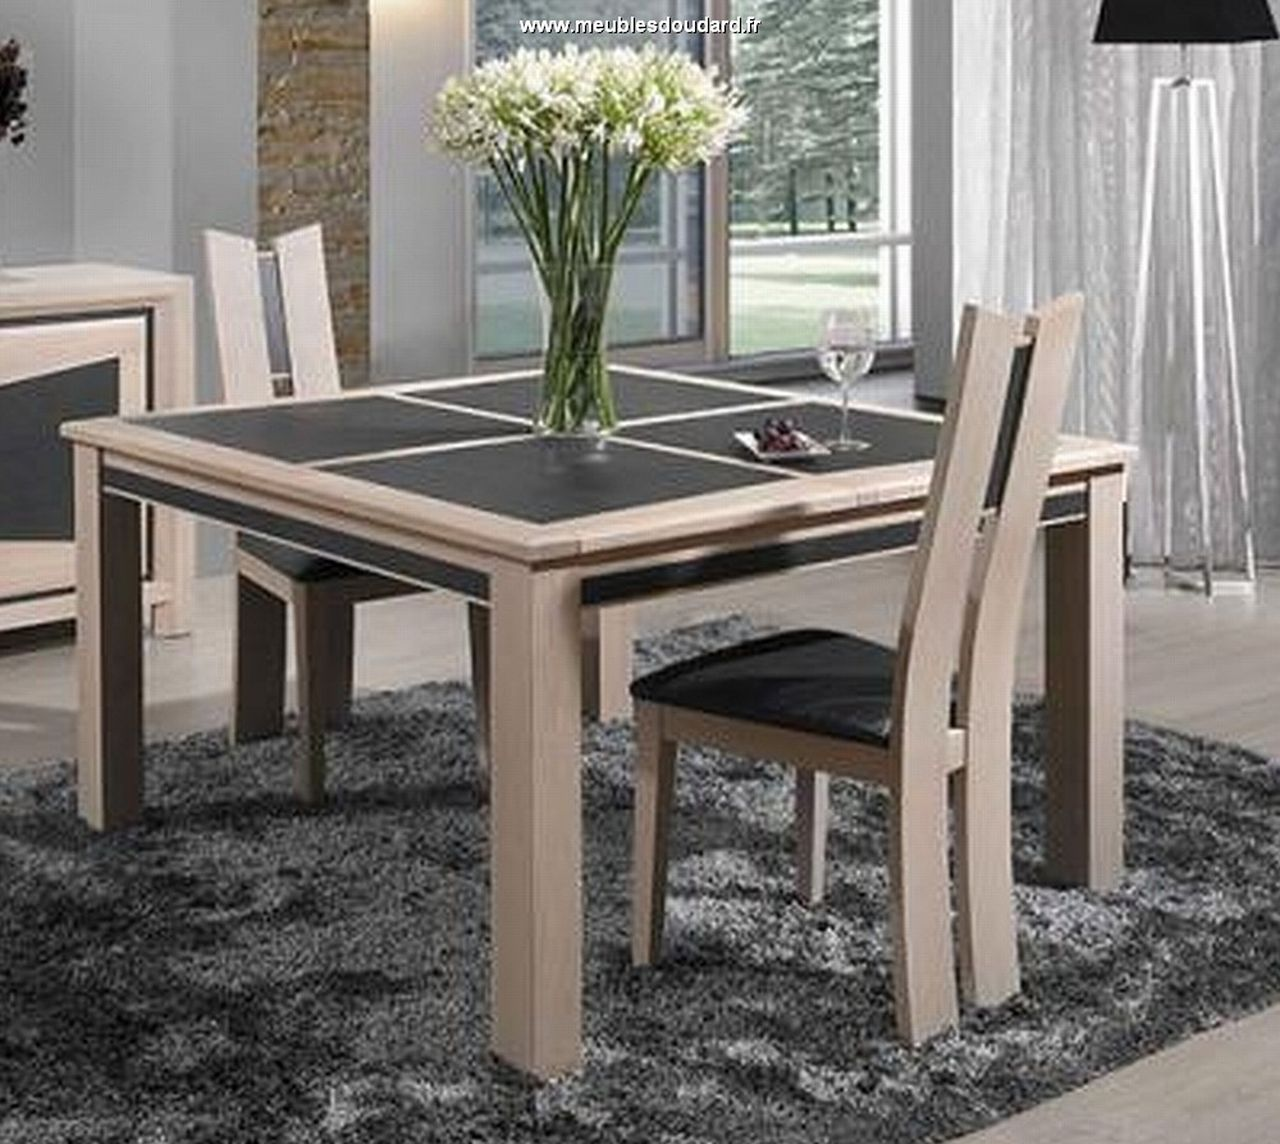 Table carr e dessus c ramique for Table de sejour carree